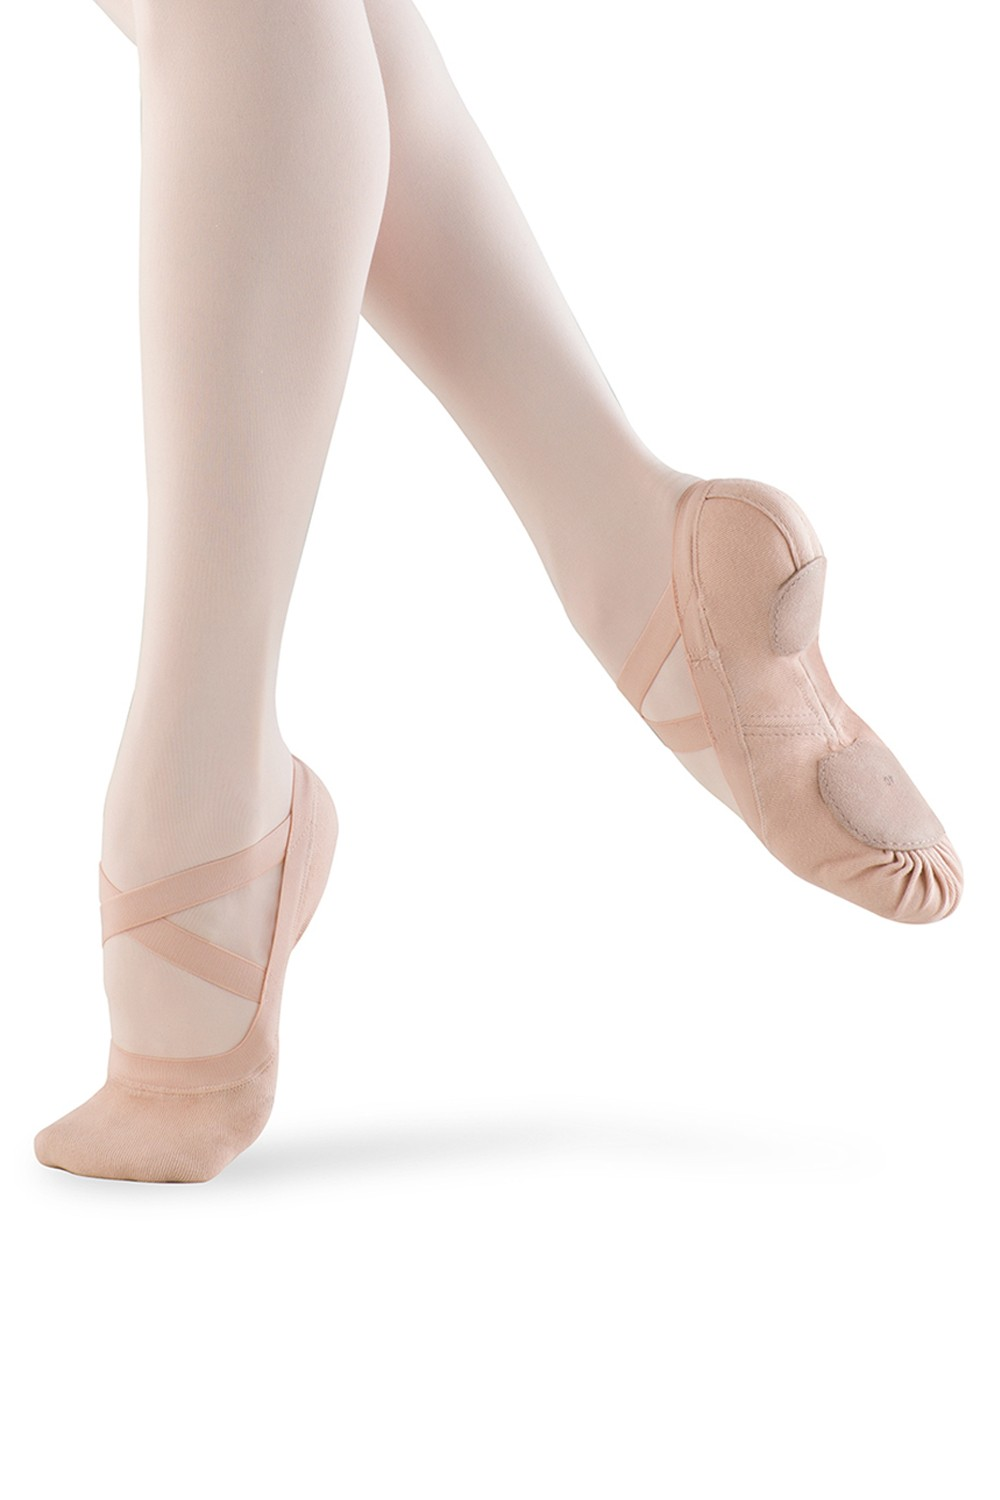 Image result for ballet shoes